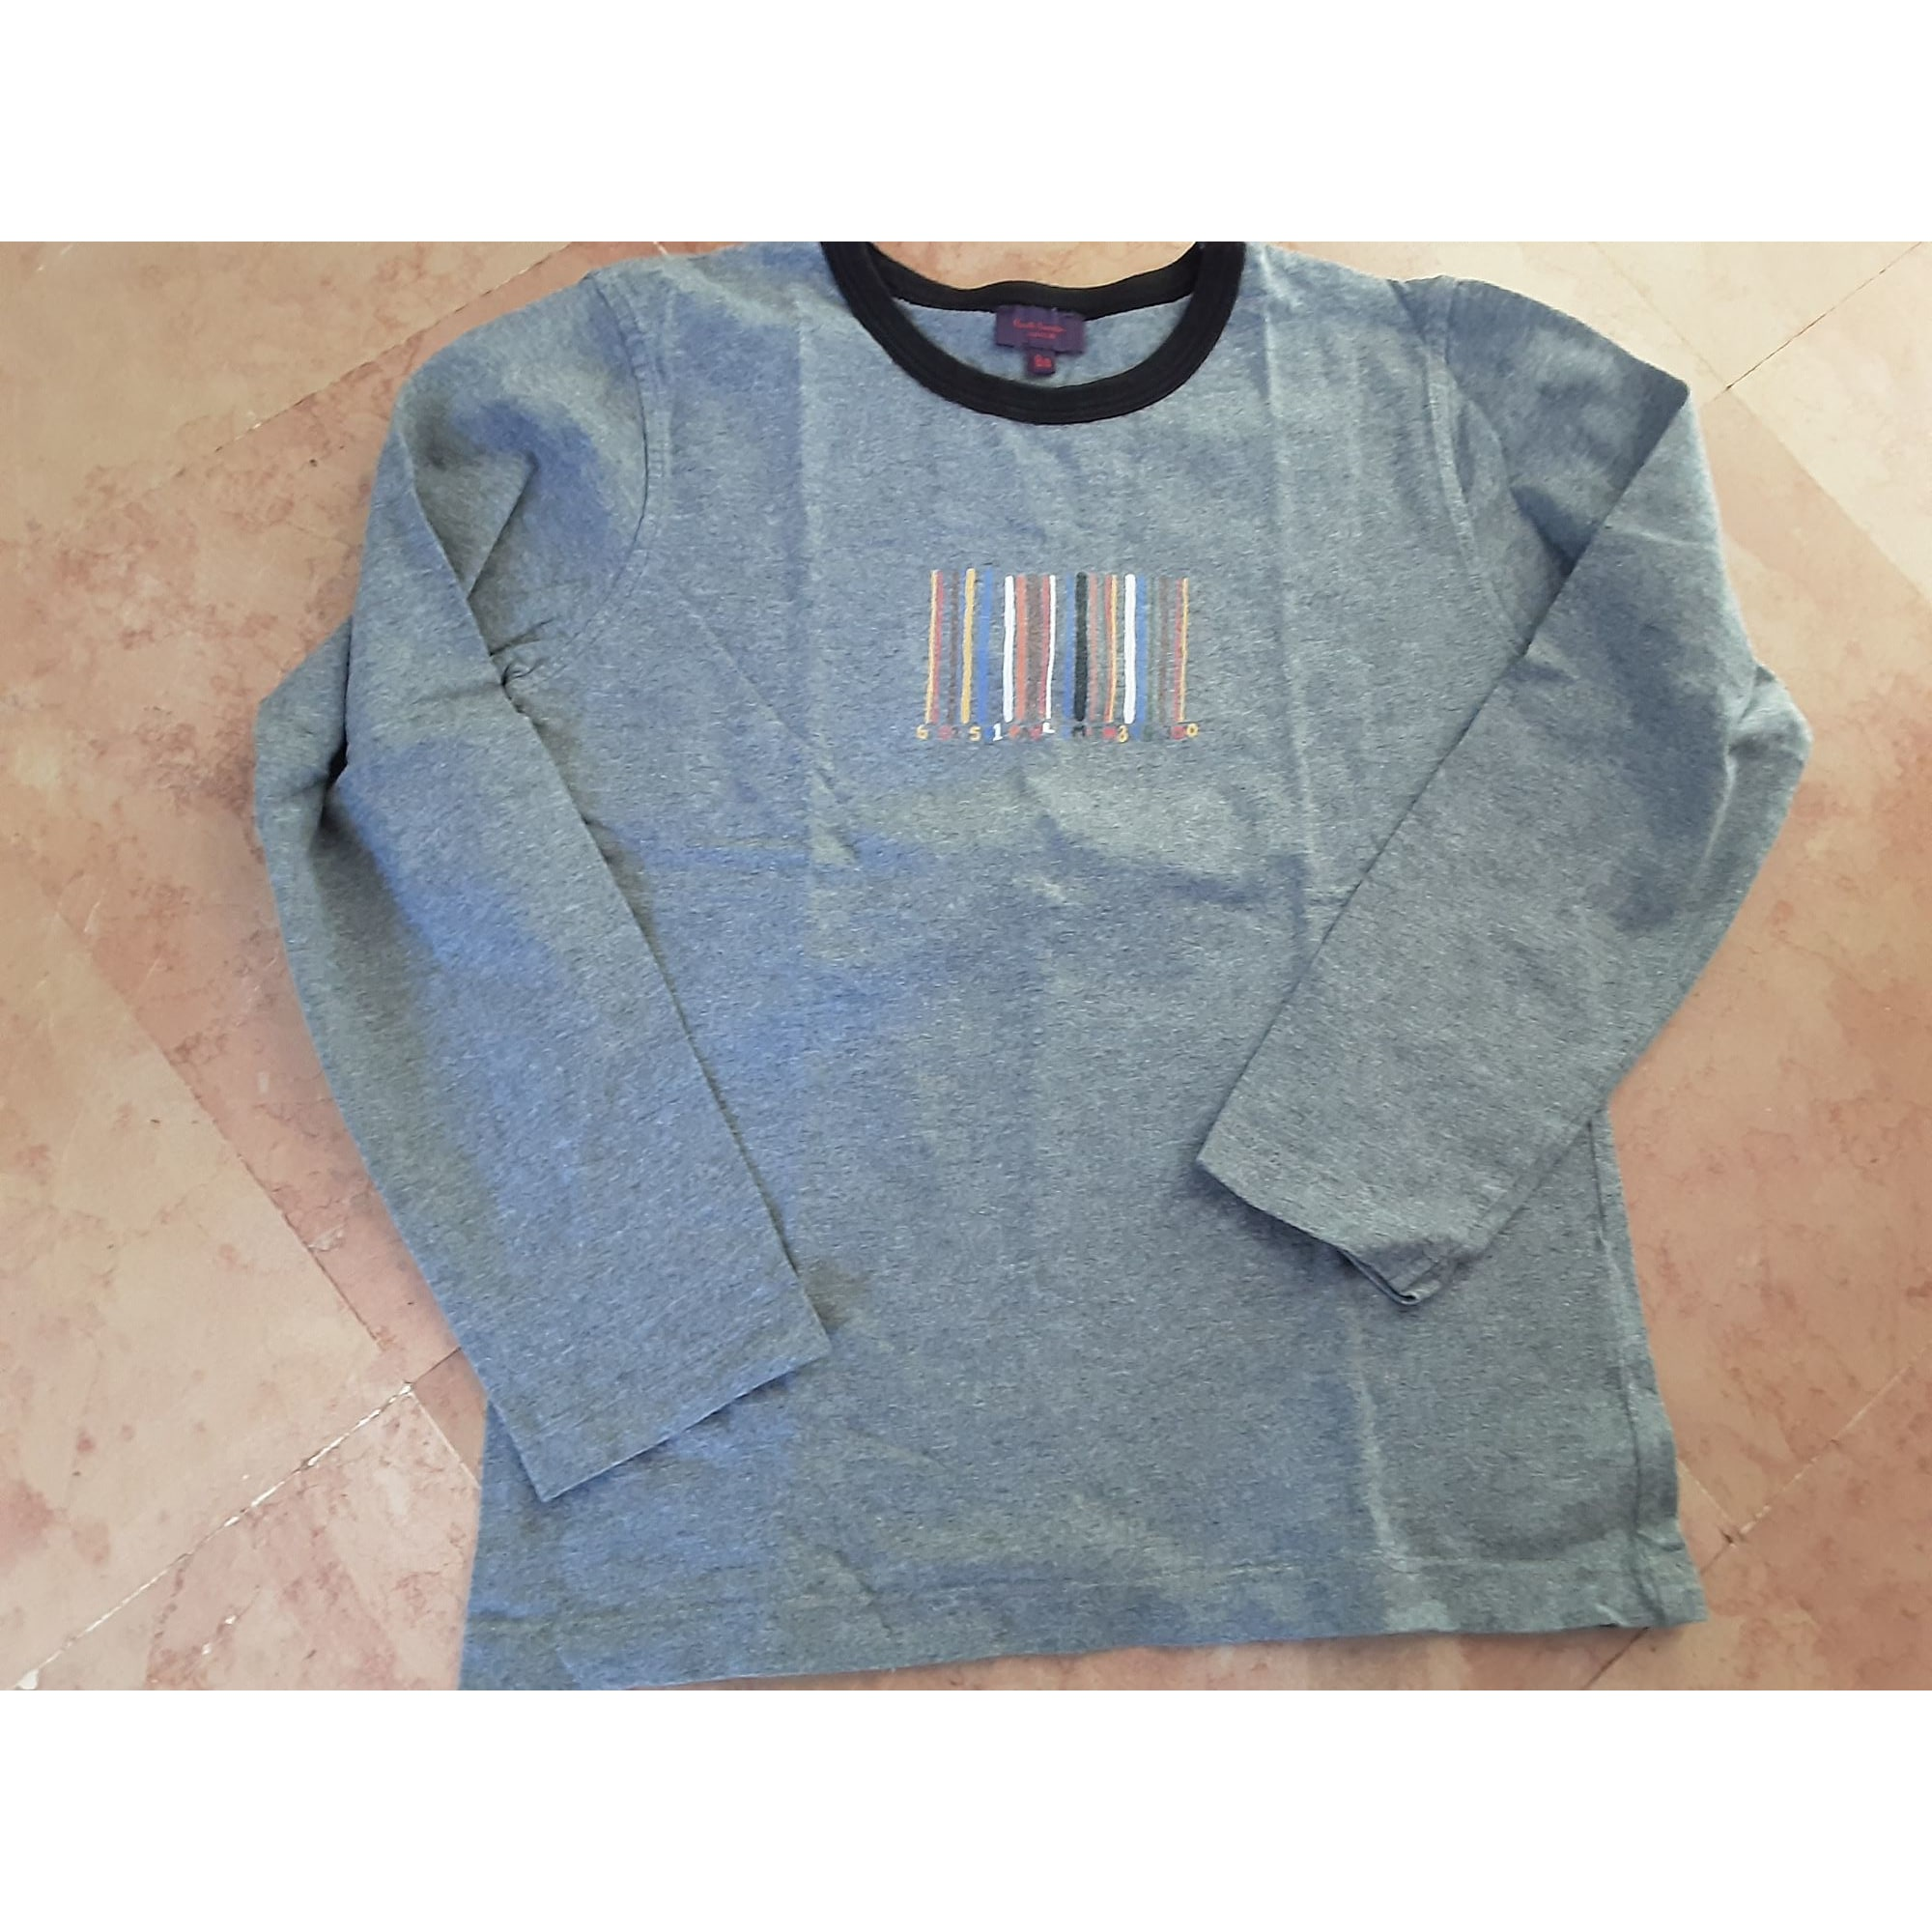 Tee-shirt PAUL SMITH Gris, anthracite